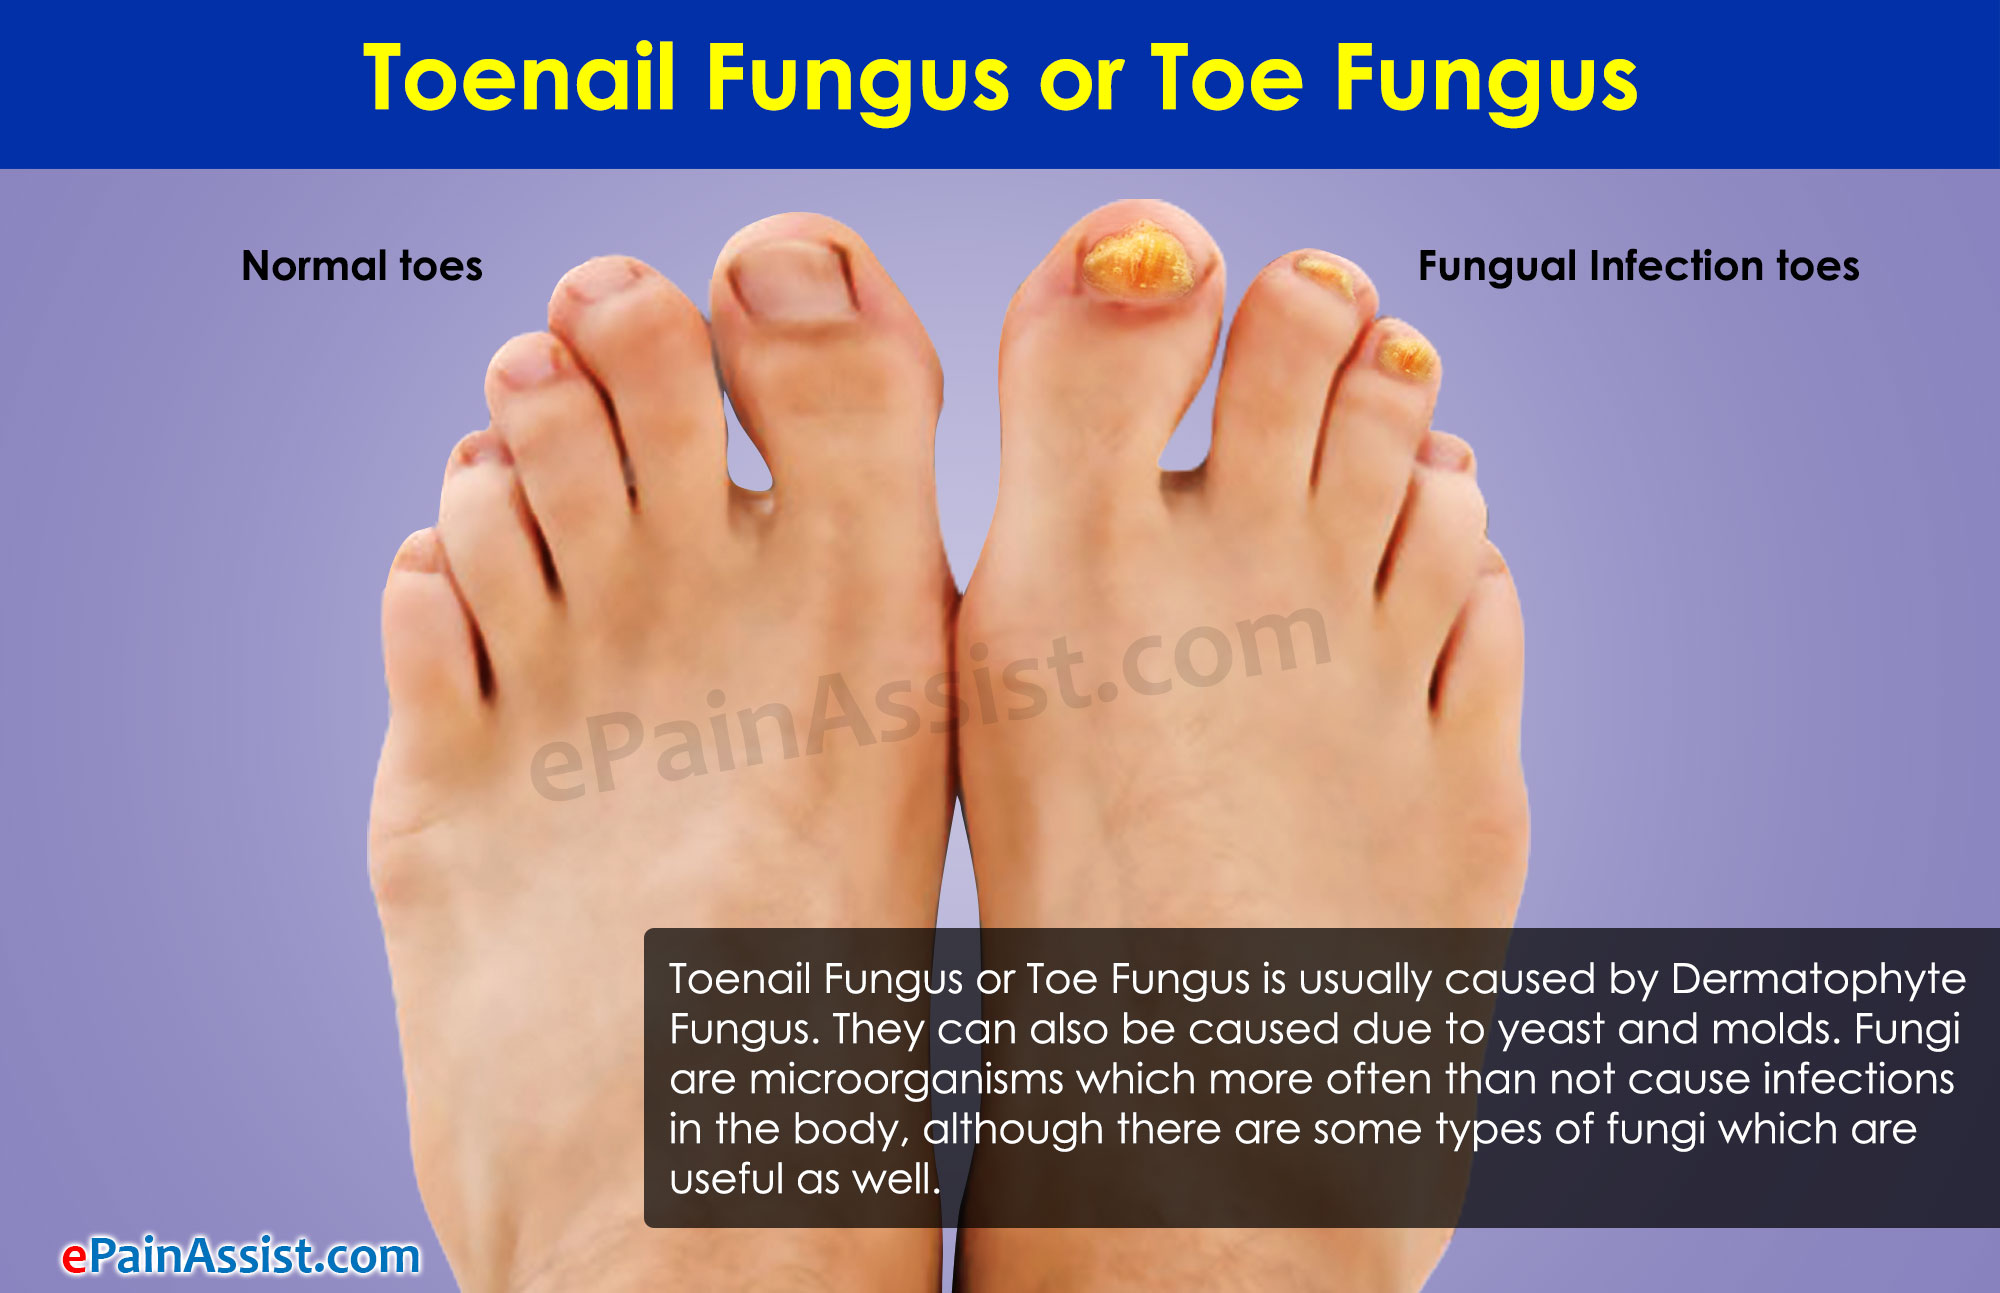 Toenail Fungus|Risk Factors|Treatment|Home Remedies|Complications